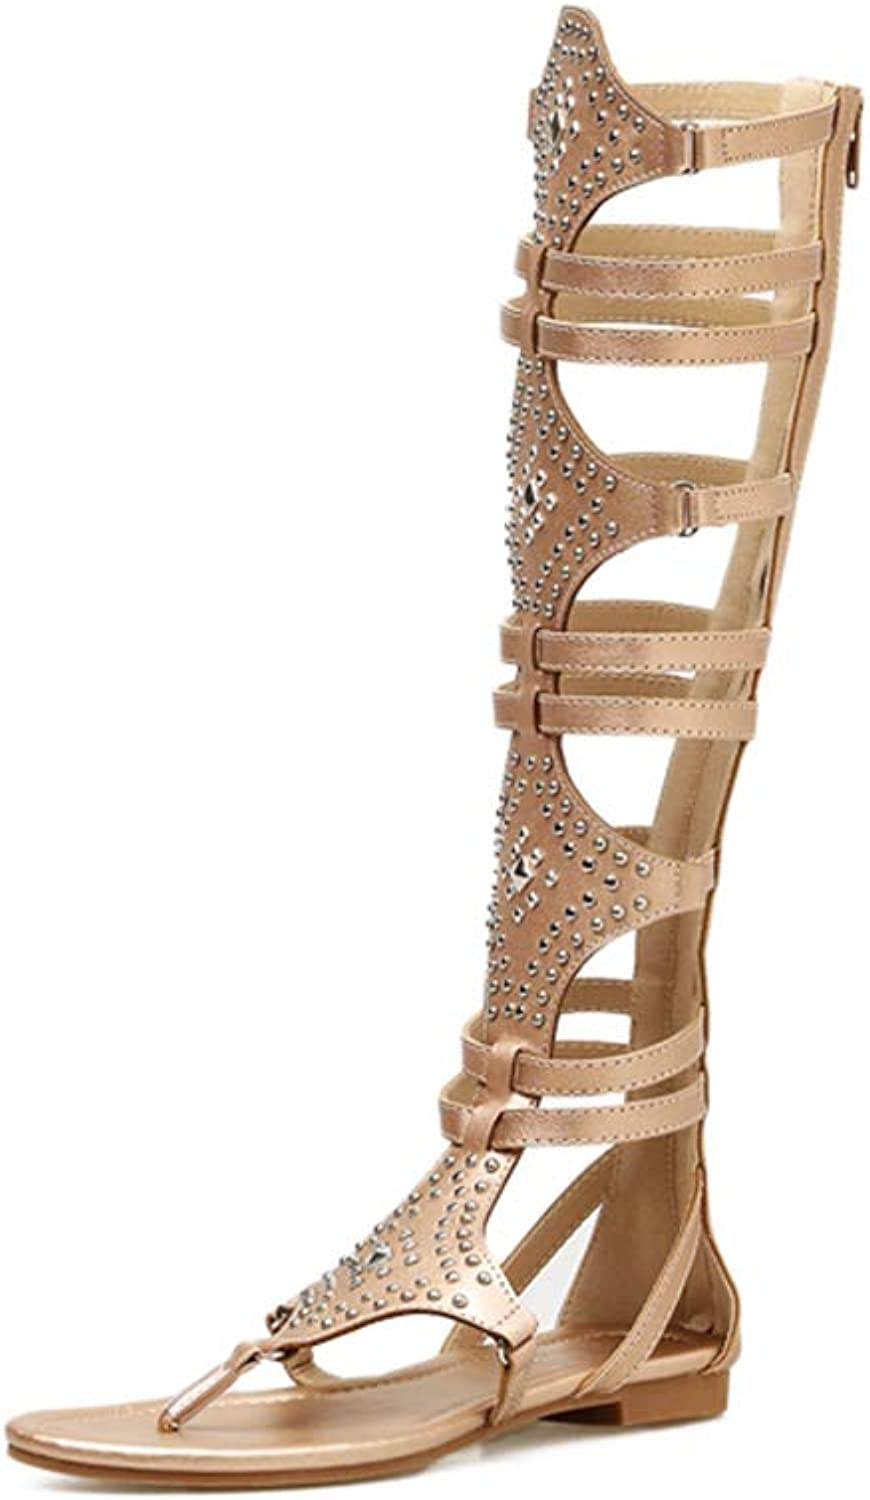 Women's Fashion Studded Knee High Gladiator Flat Outdoor Sandals Back Zip shoes,gold,5MUS